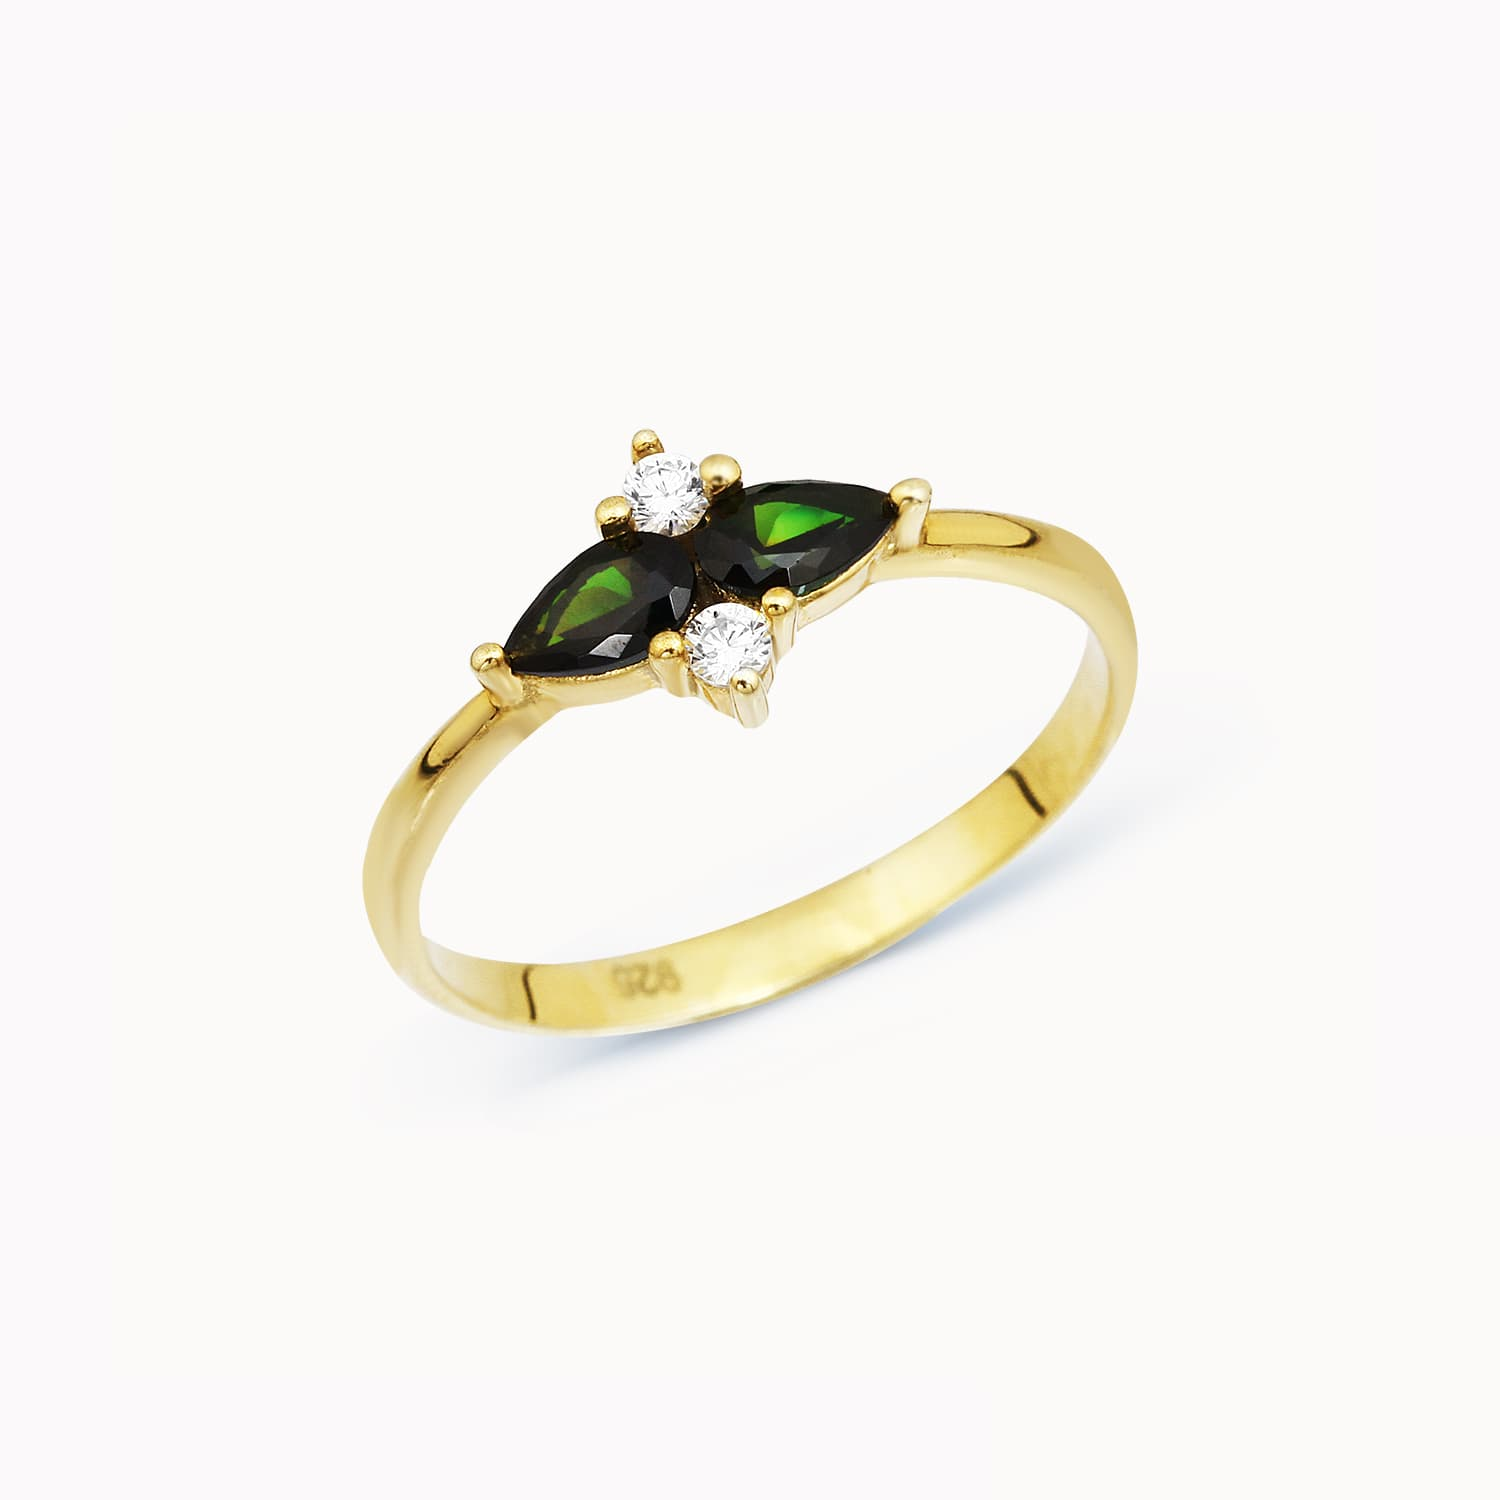 Banipal Colored Stone Ring - Emerald